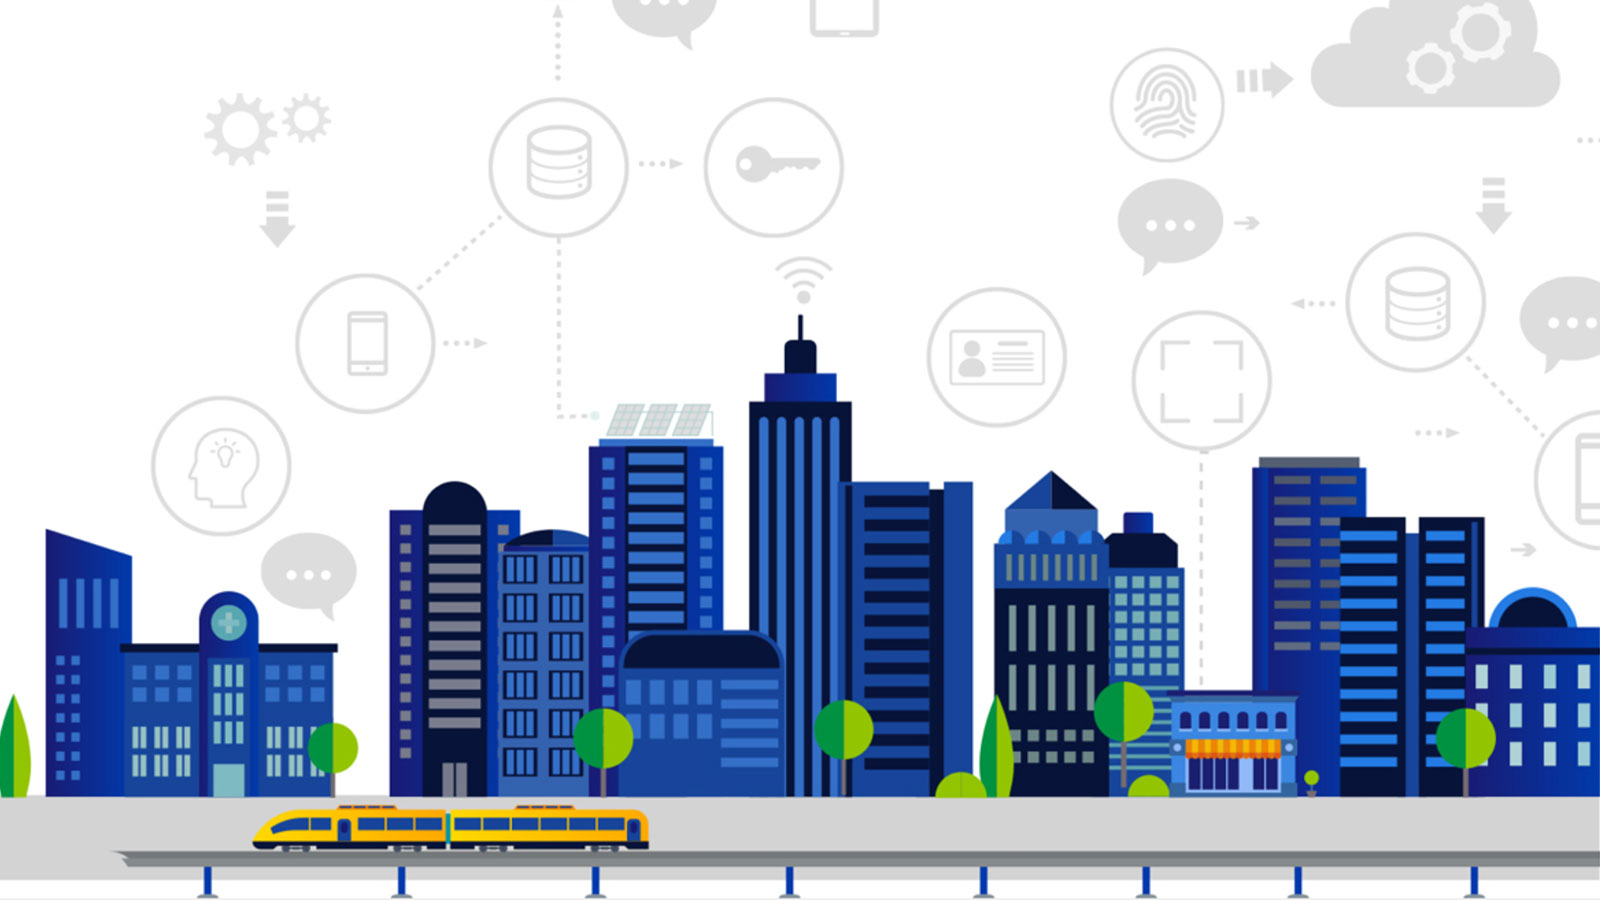 An illustration of a city and icons depicts a variety of places that digital authentication can be used.